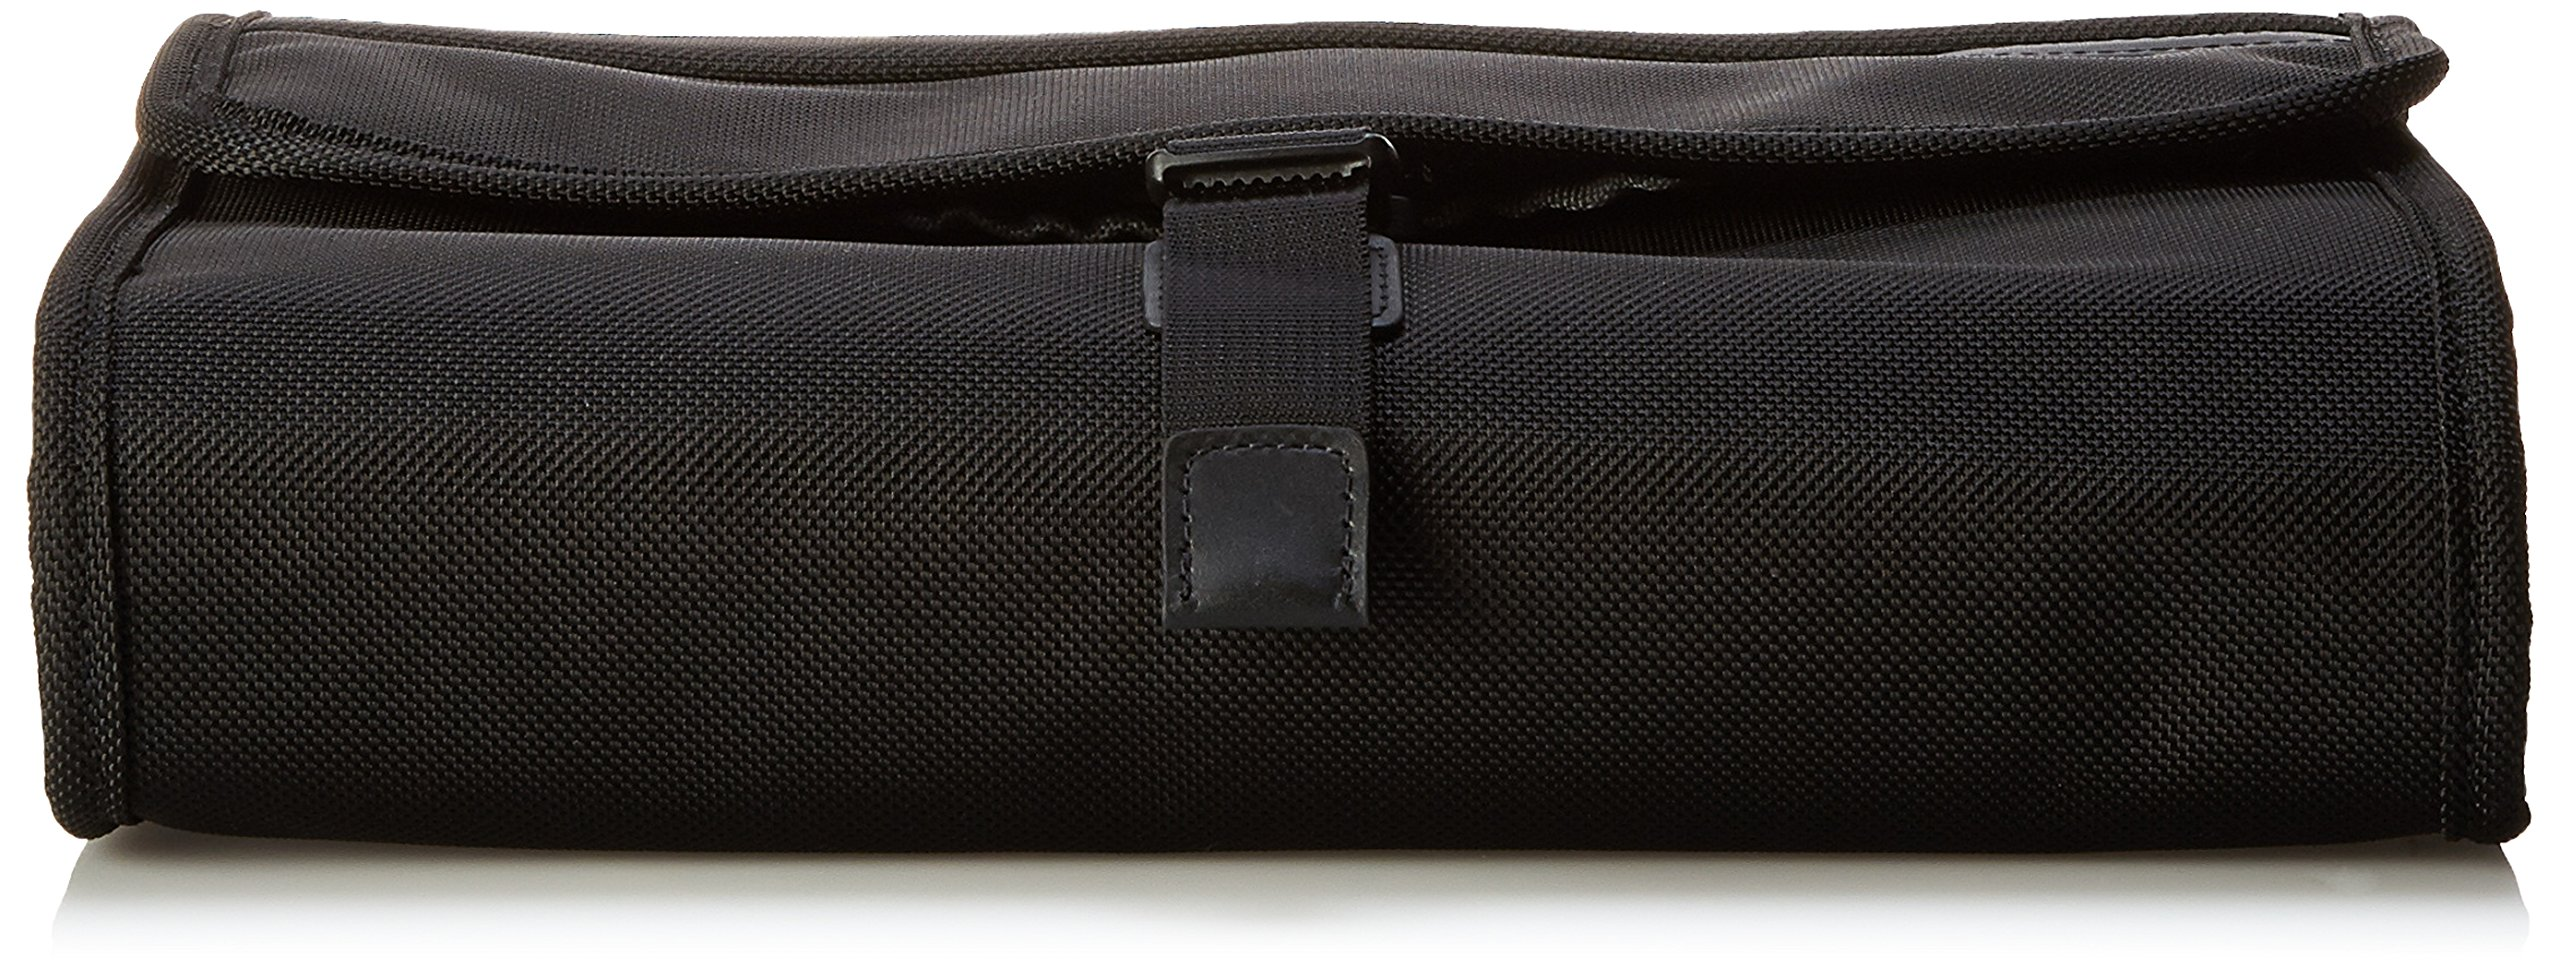 Briggs & Riley Deluxe Toiletry Kit, Black, One Size by Briggs & Riley (Image #5)